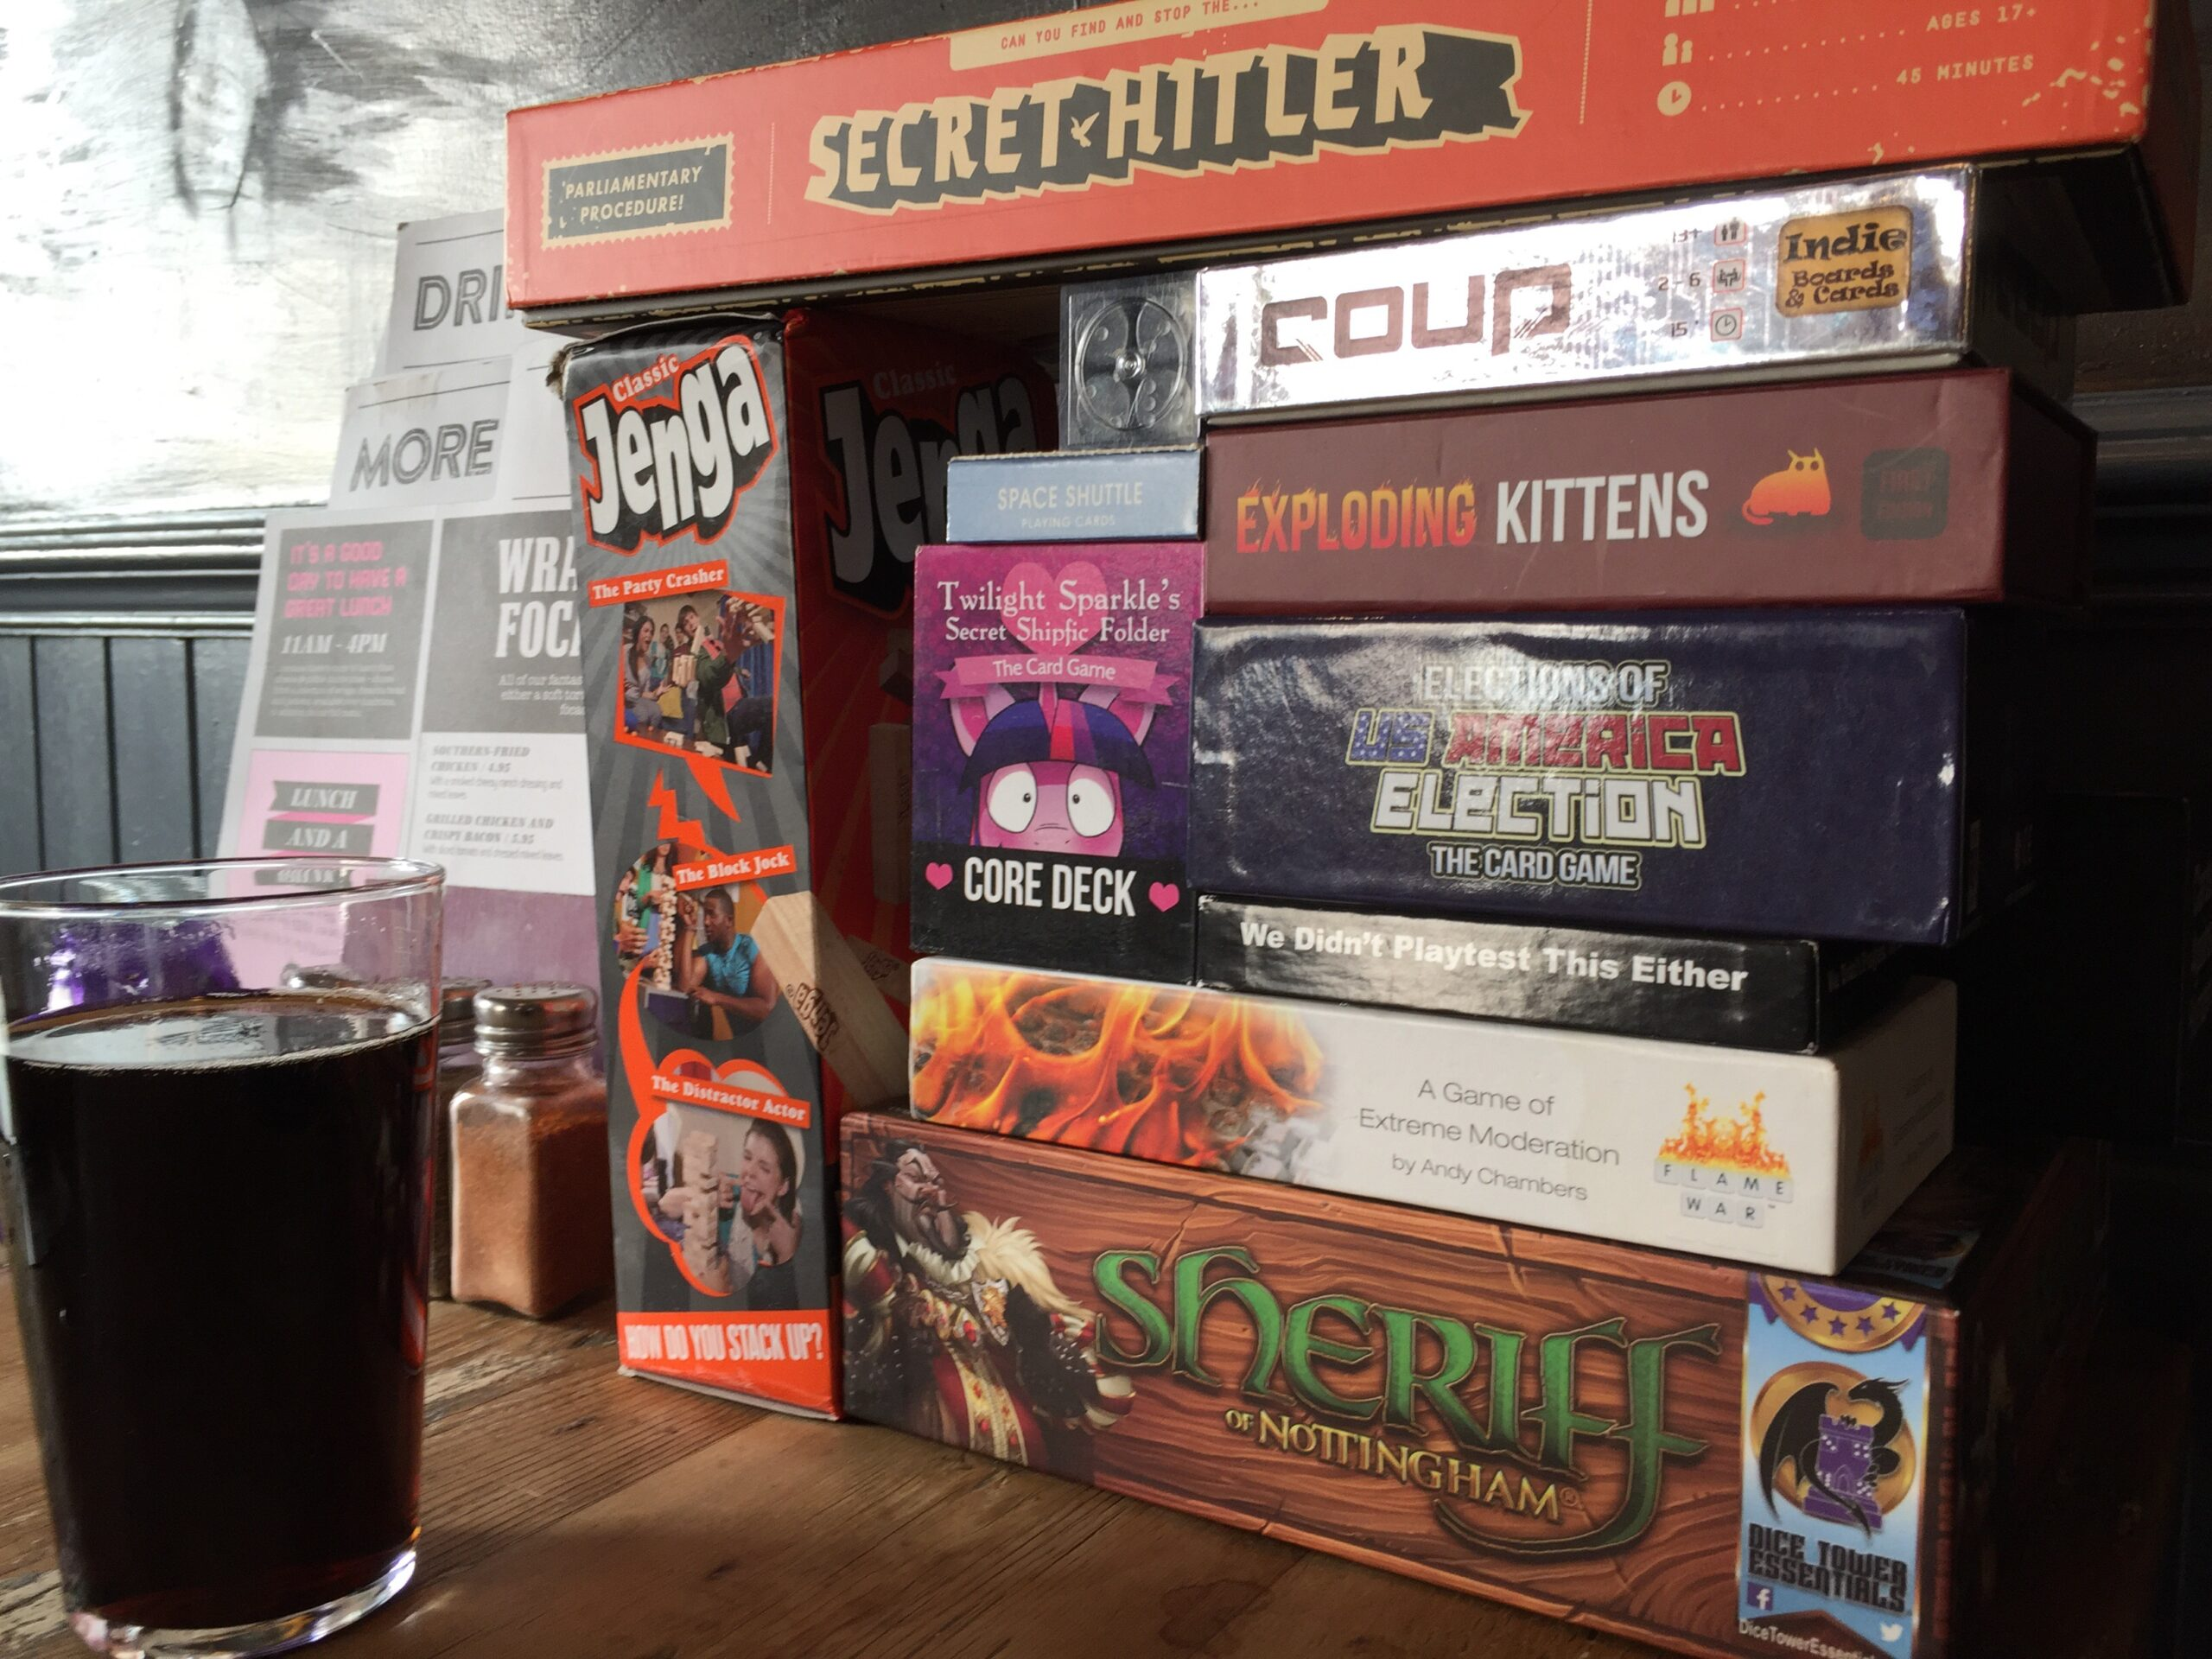 A stack of board games on a table, including Secret Hitler, Coup, Exploding Kittens, Twilight Sparkle's Secret Shipfic Folder, Elections of US America Election: The Card Game, We Didn't Playtest This Either, Flame War, Sheriff of Nottingham, and Jenga. A partially drank pint of cola stands next to the games.